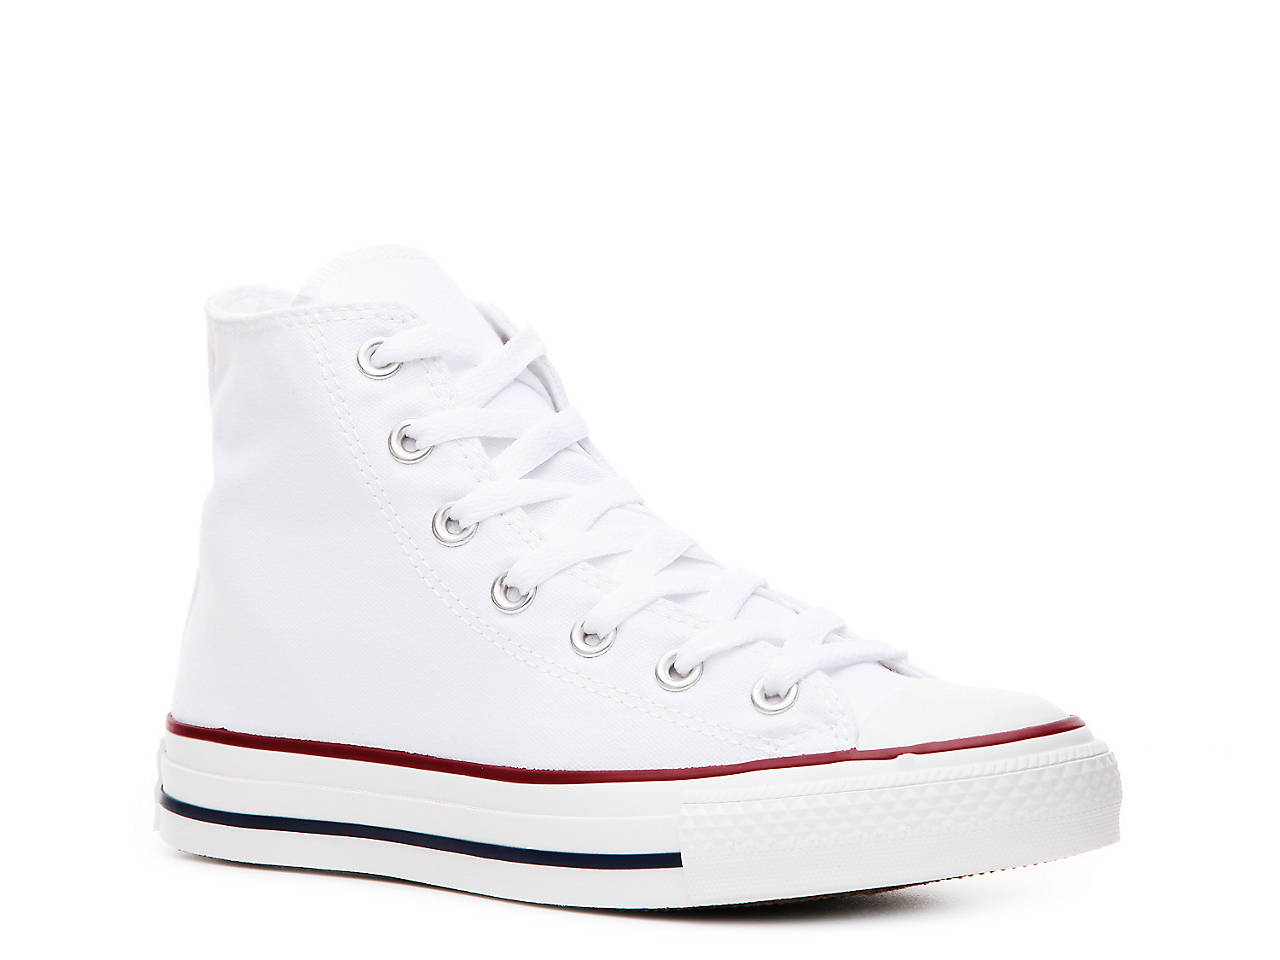 b593c6694fa8d7 Converse Chuck Taylor All Star High-Top Sneaker - Women s Women s ...